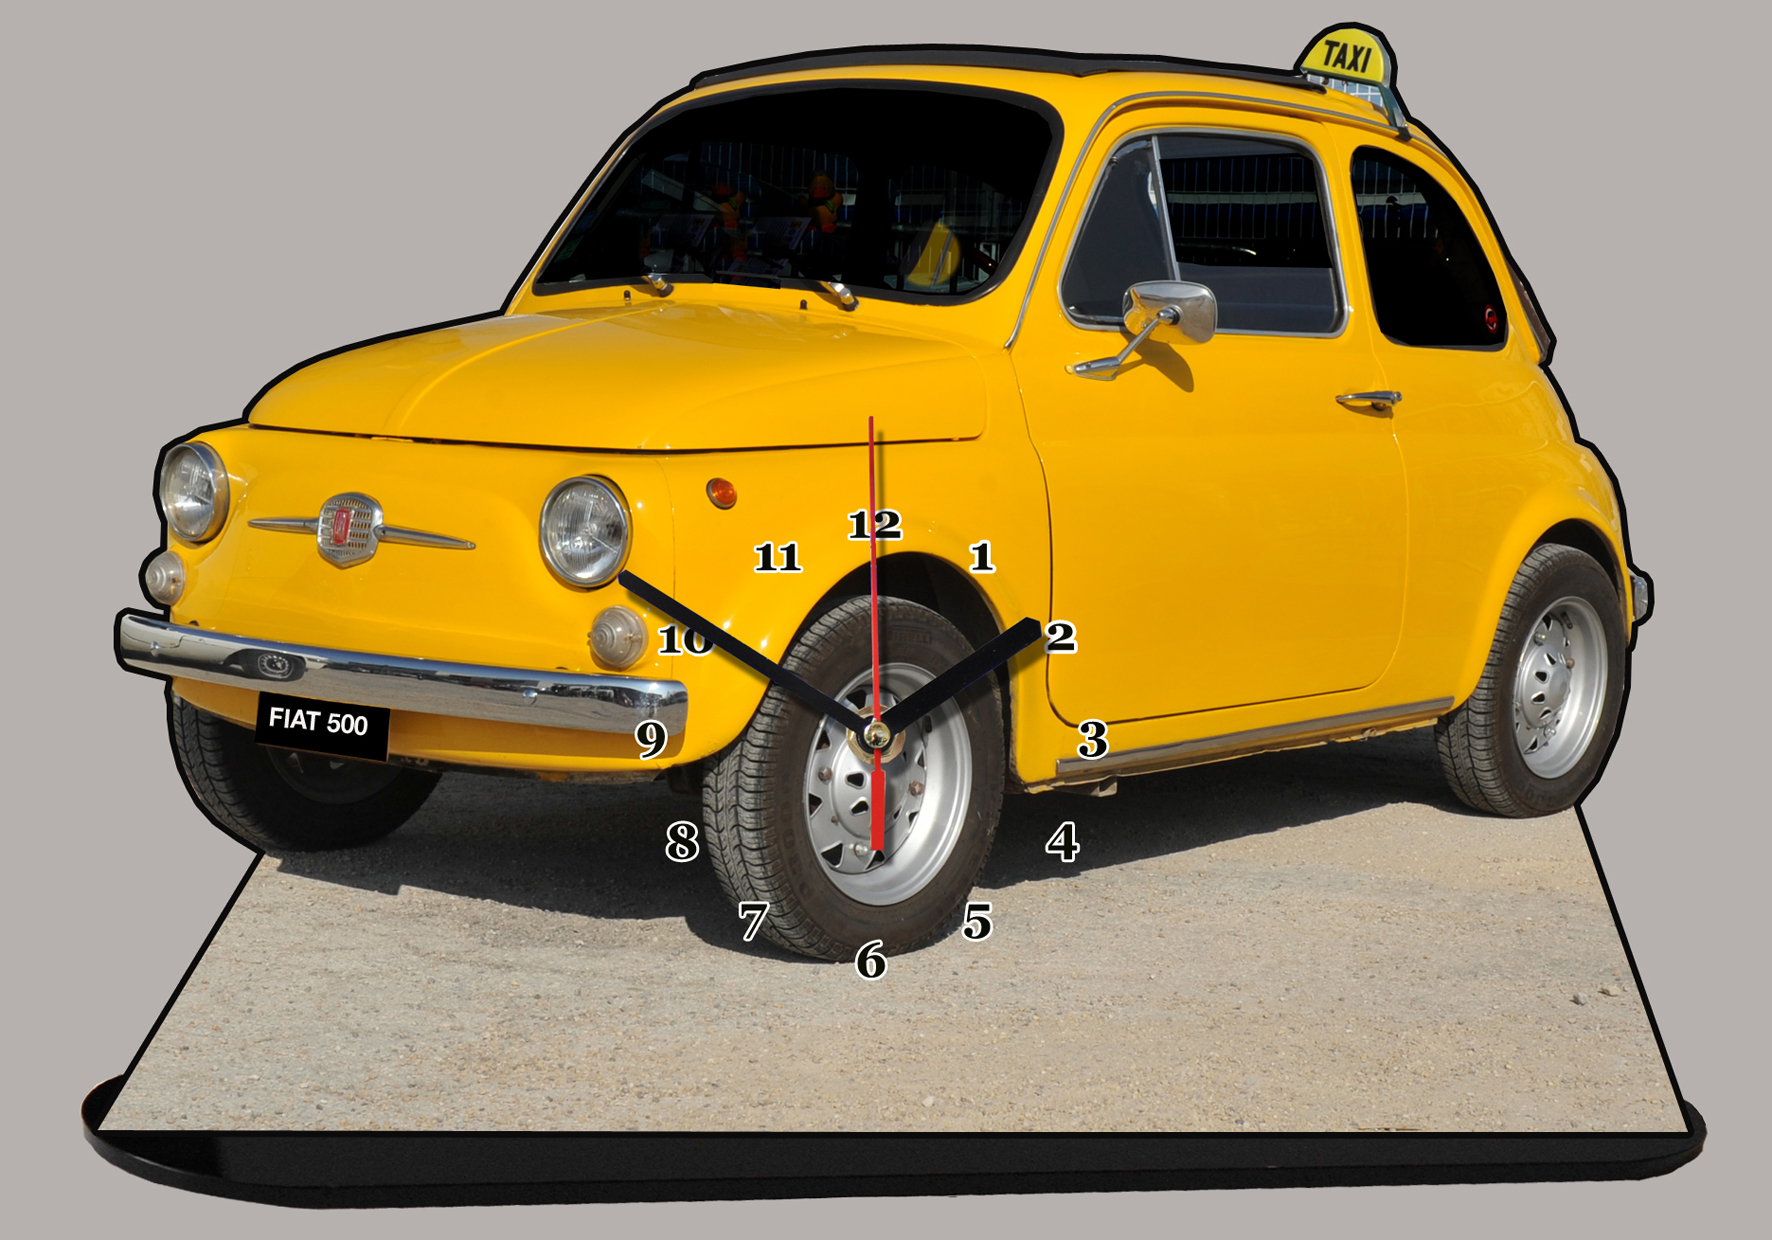 fiat 500 jaune taxi 05 en miniature auto horloge. Black Bedroom Furniture Sets. Home Design Ideas